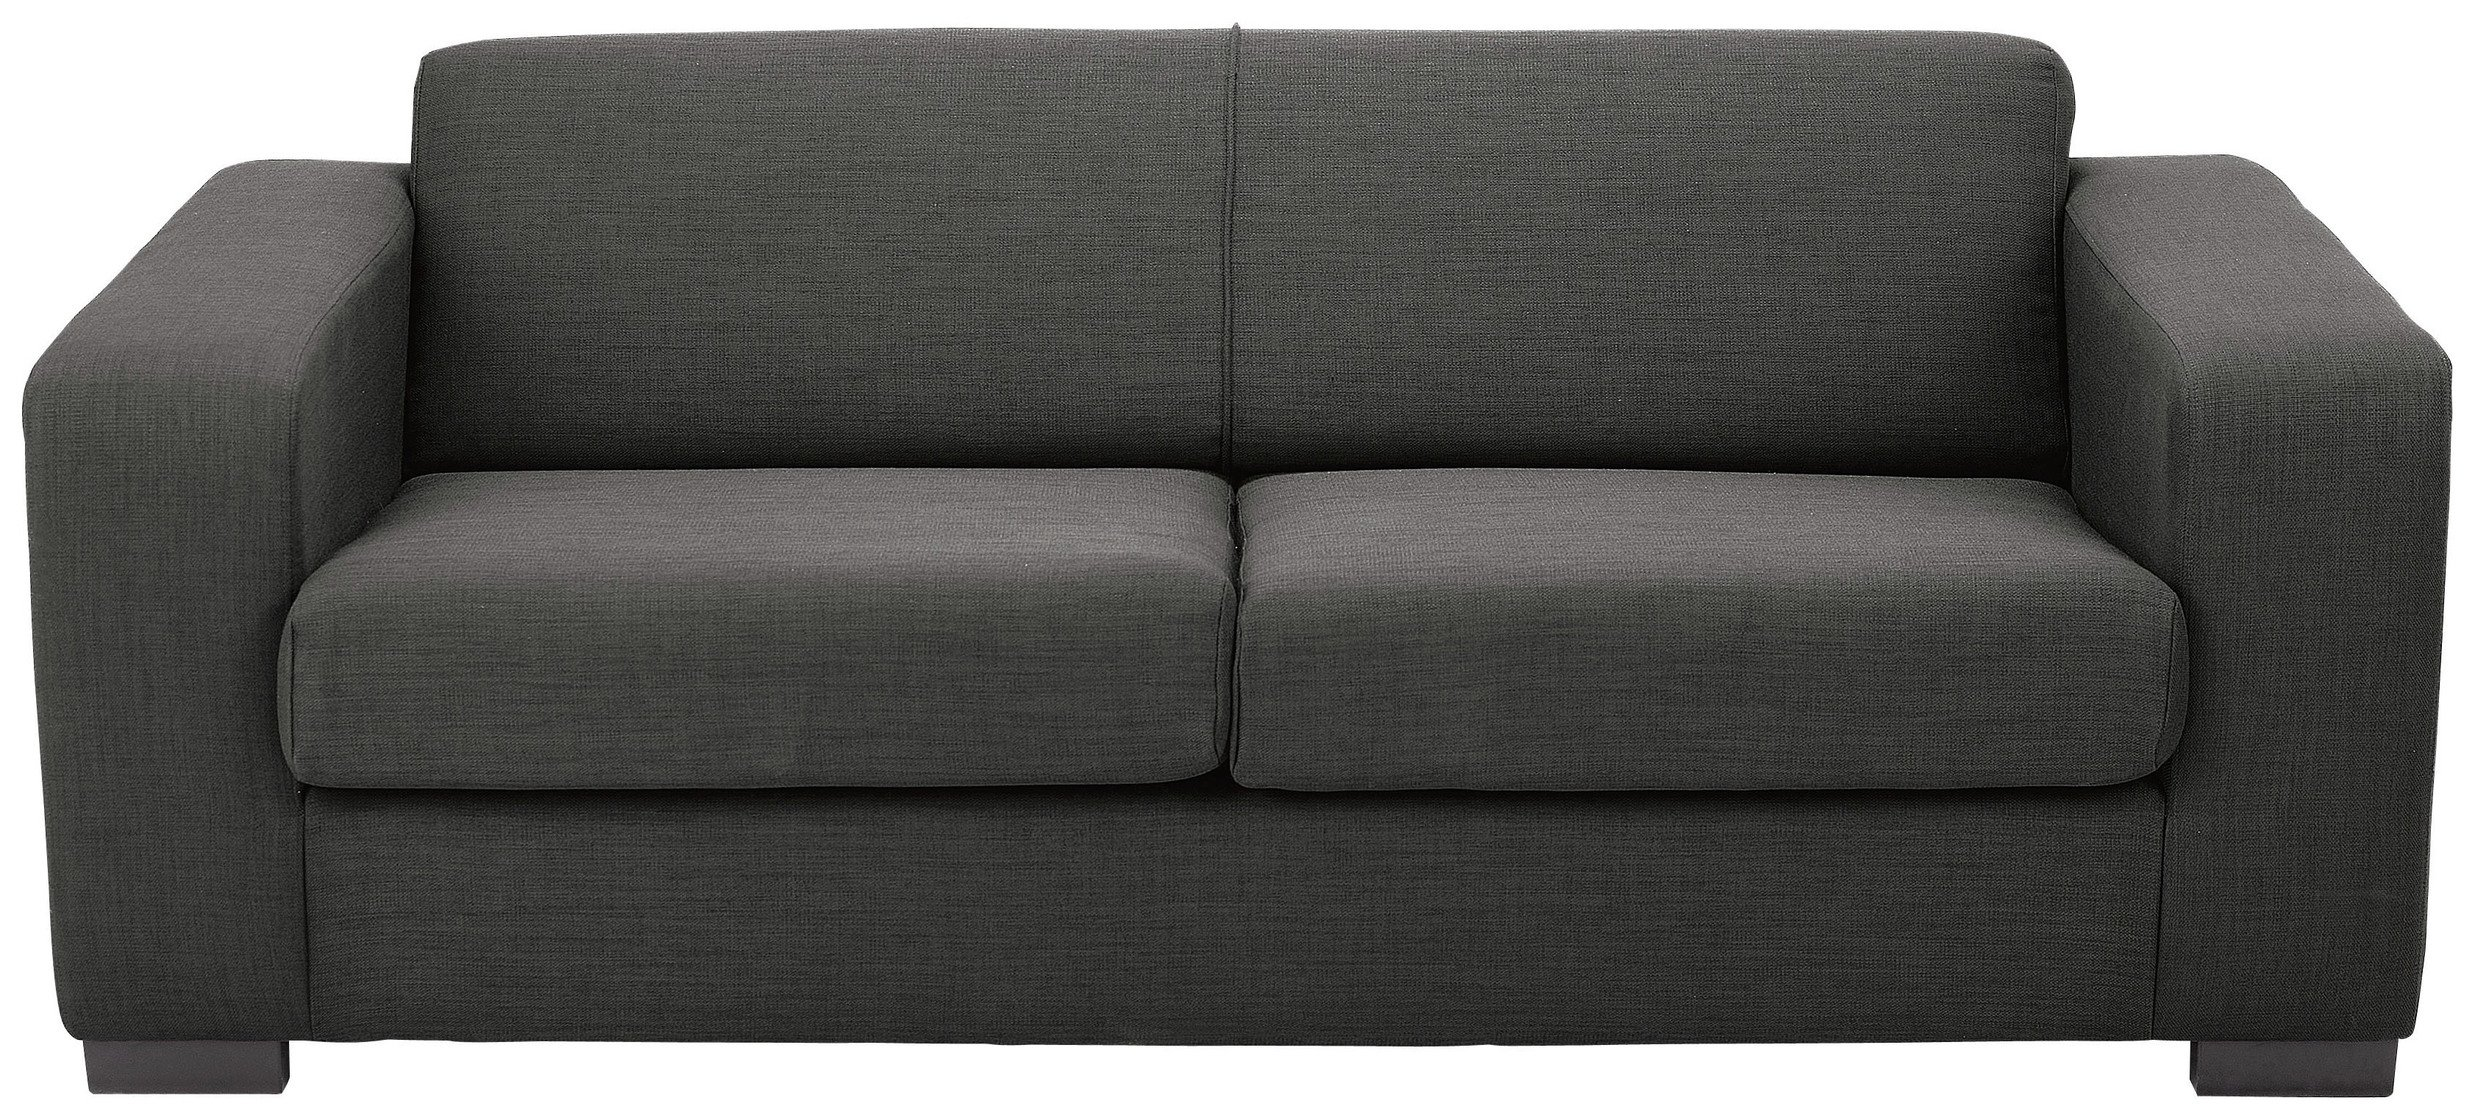 Sofa Beds, Chairbeds And Futons